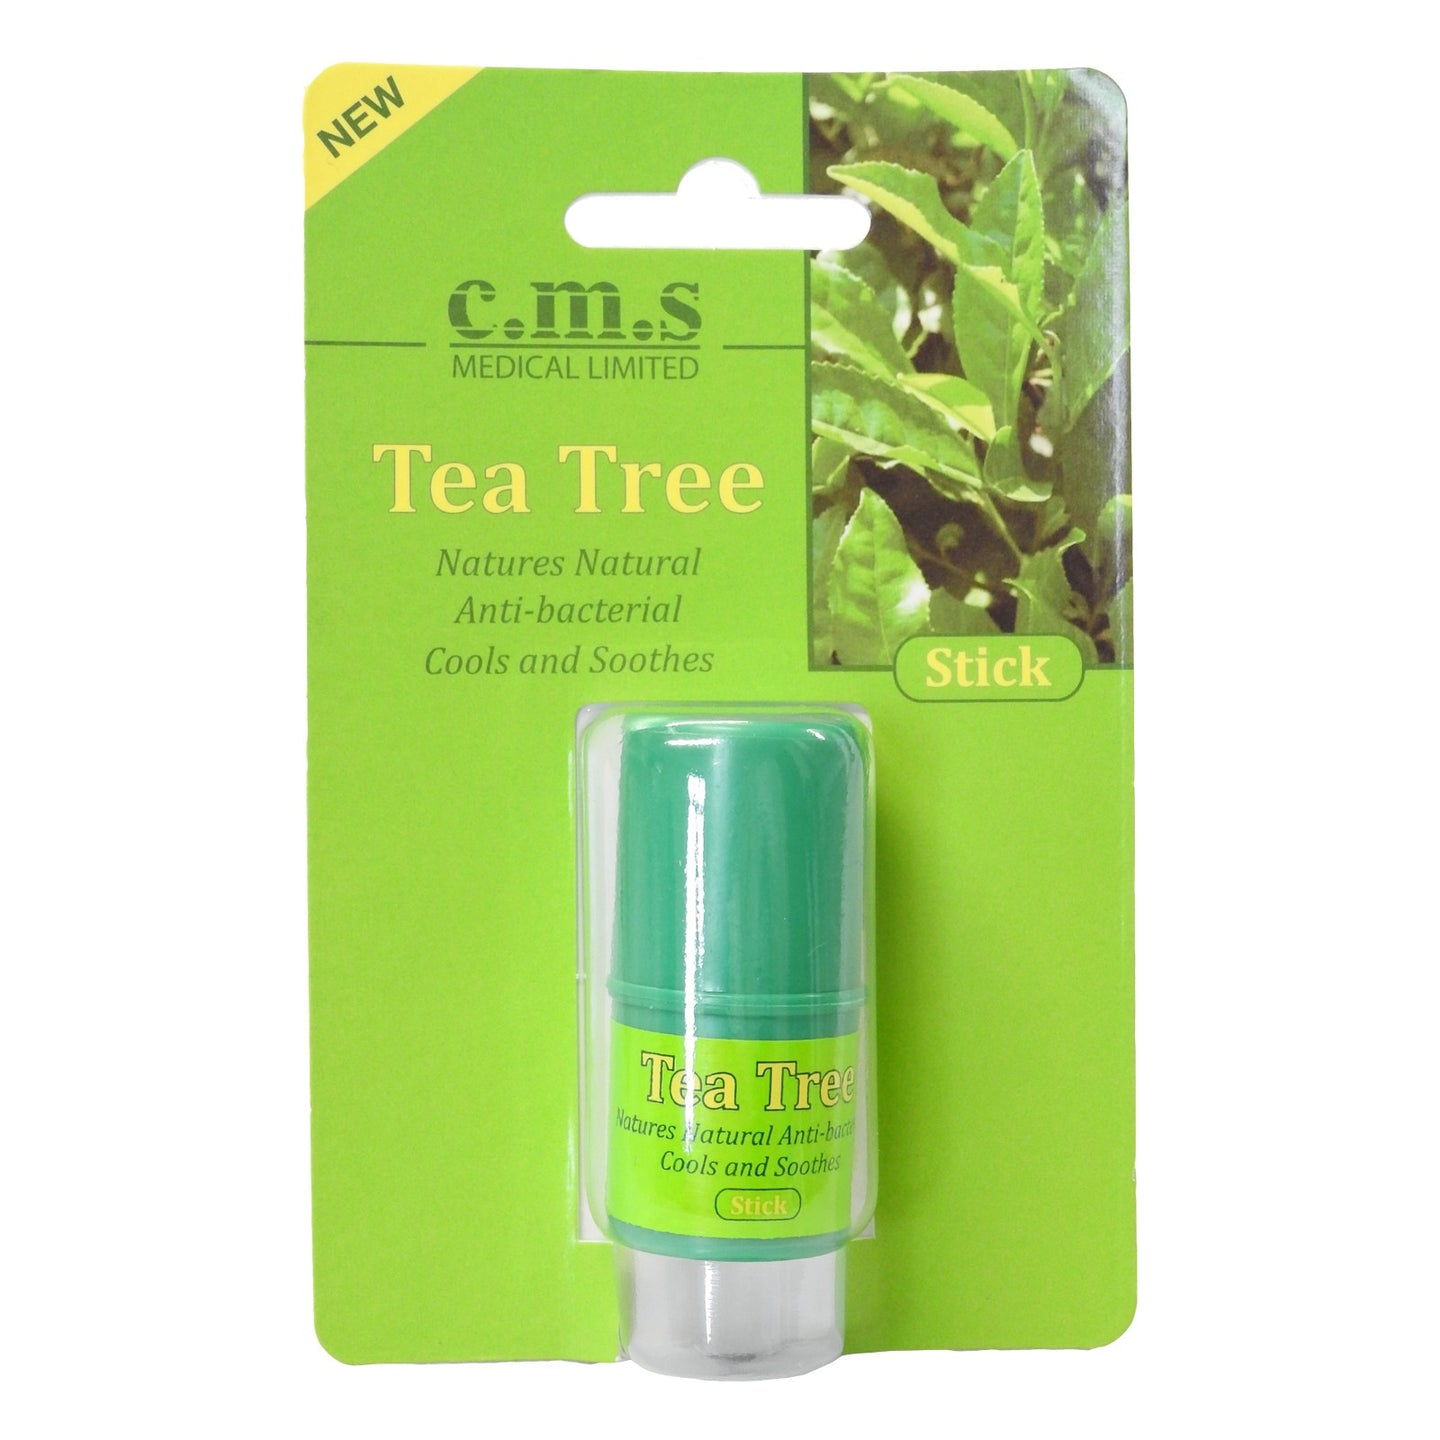 Tea Tree Stick